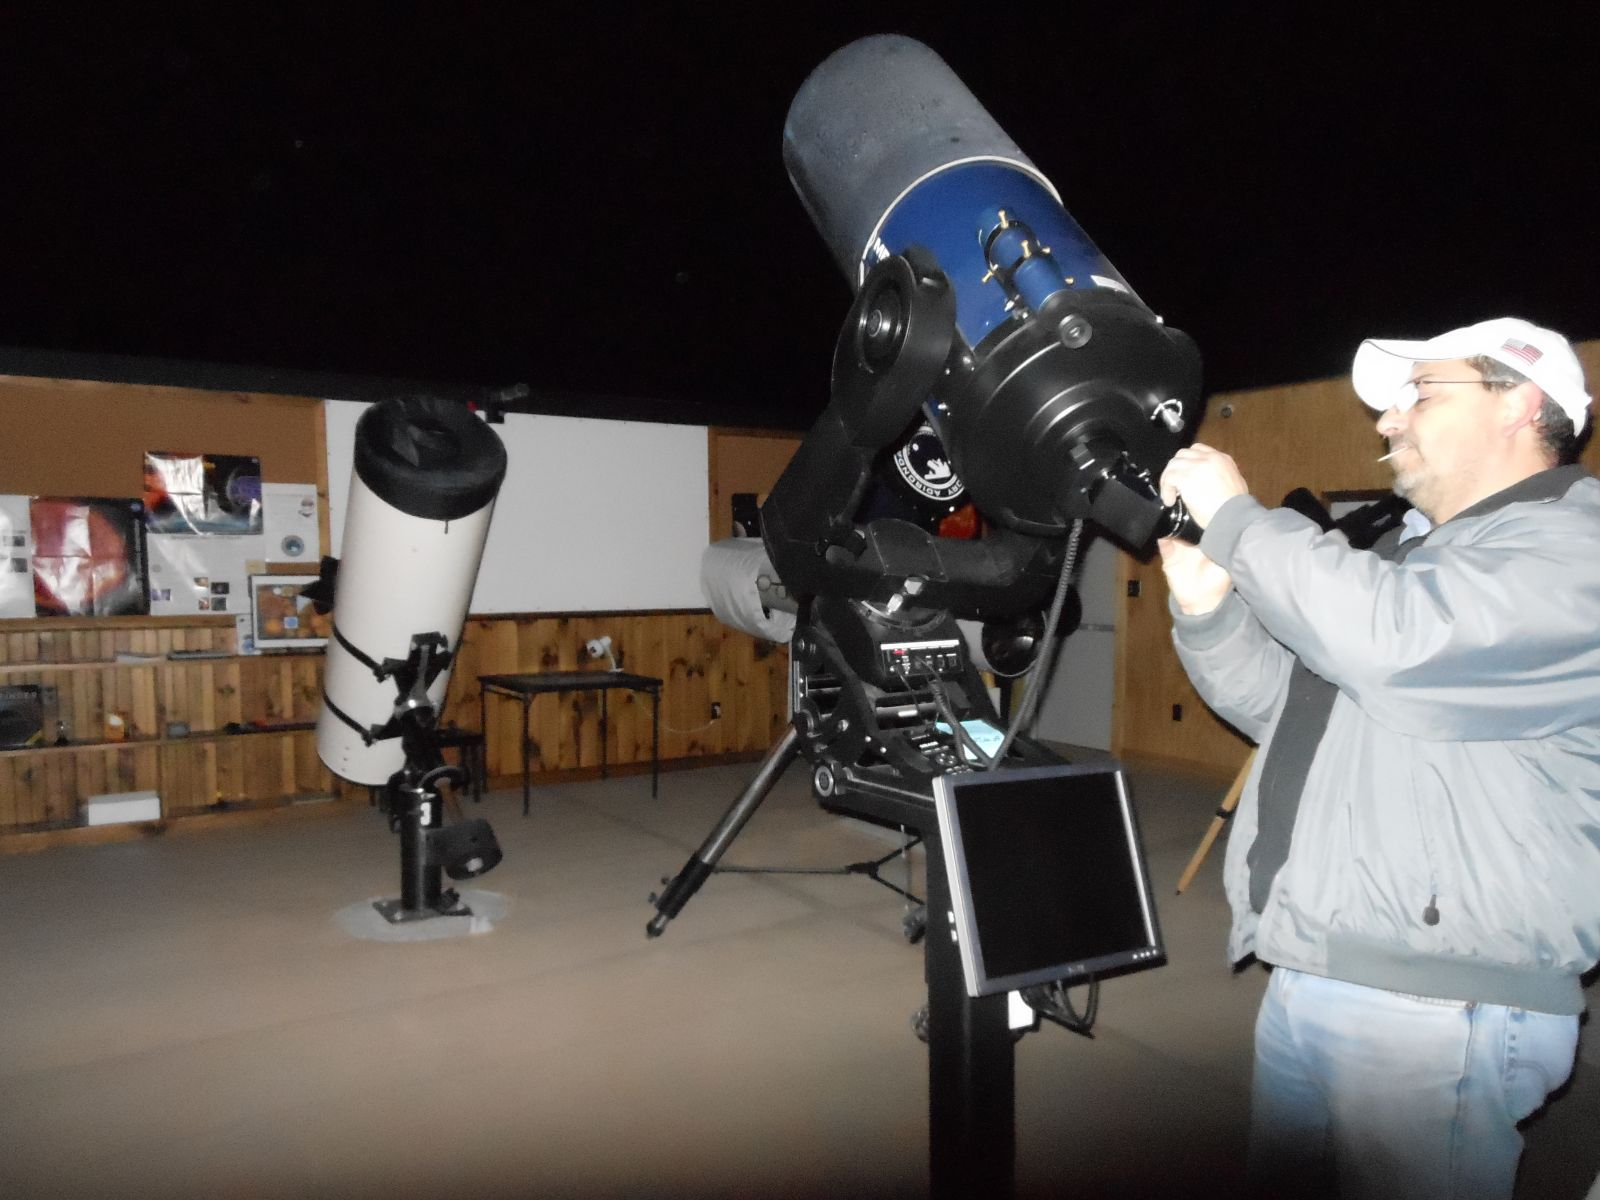 Marc setting up the telescope